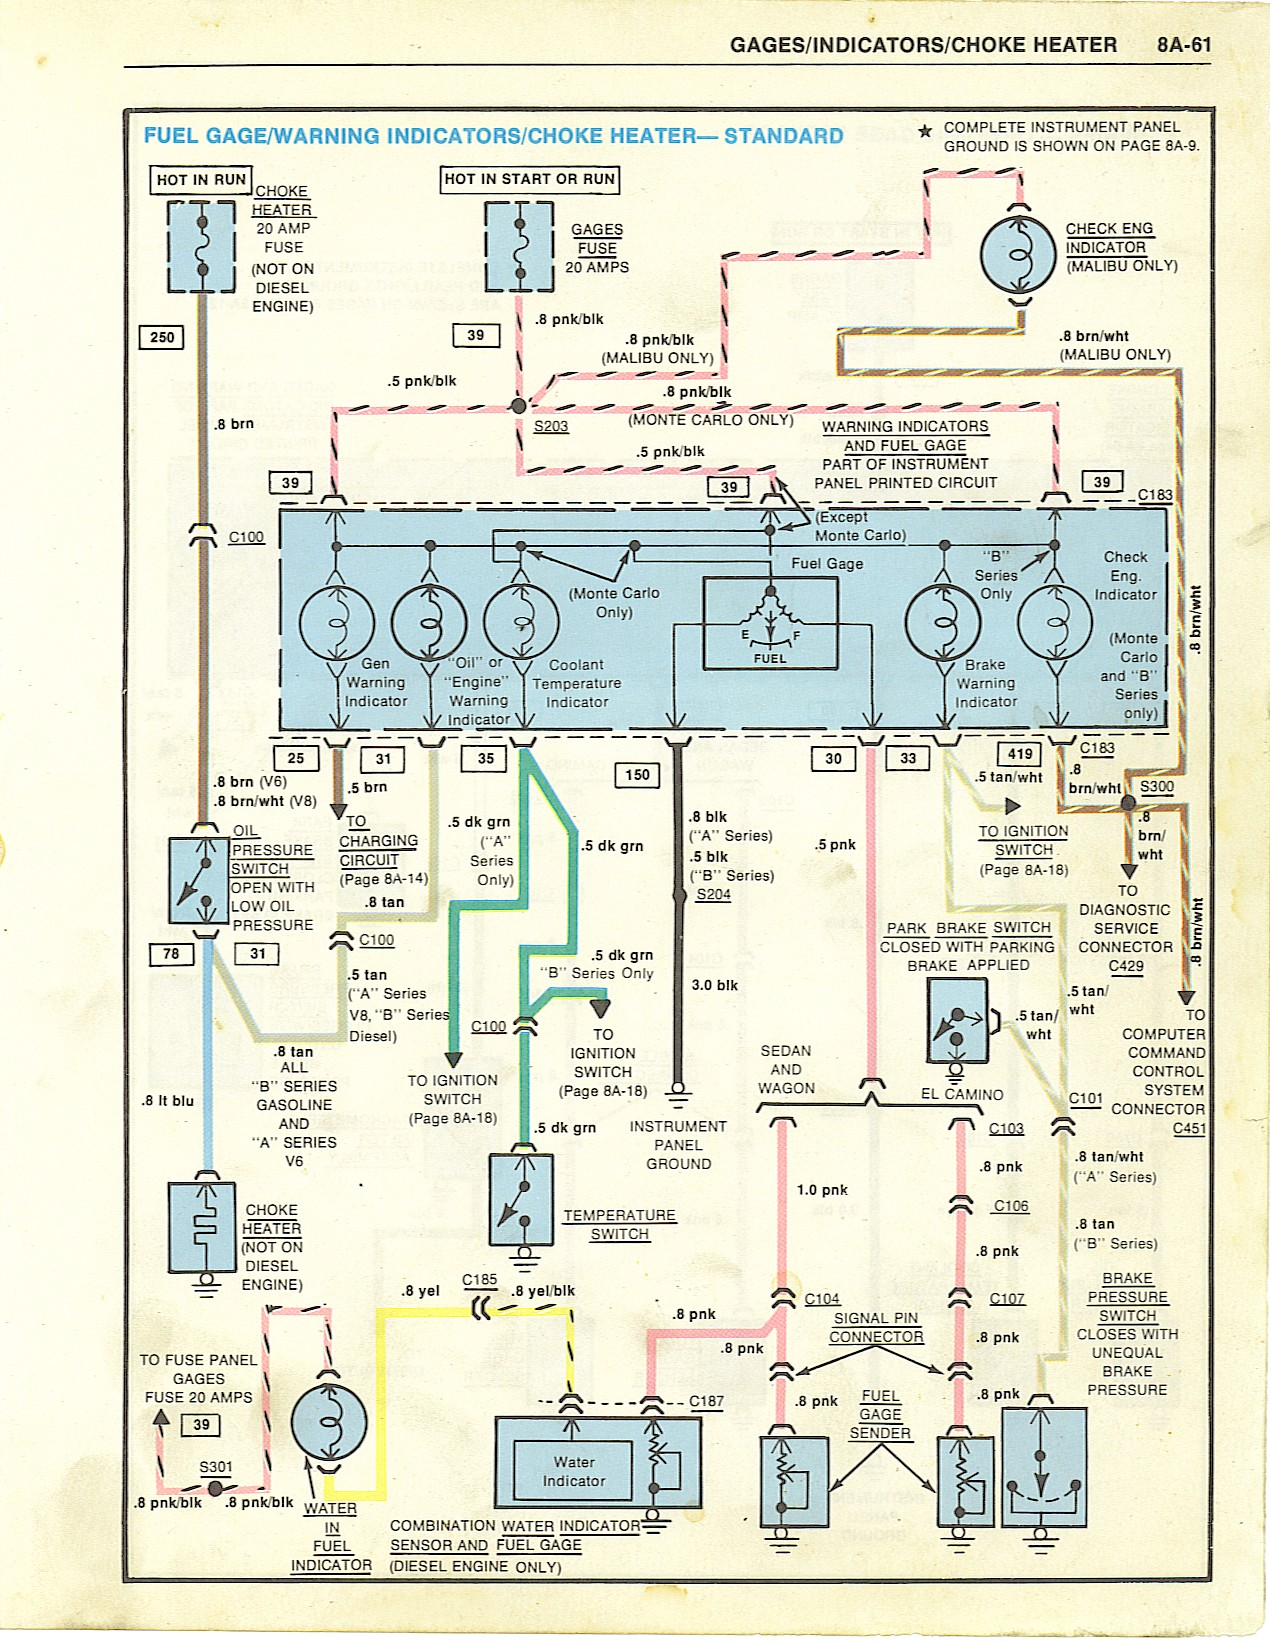 FuelGage WarningIndicators 1977 el camino wiring diagram wiring diagram simonand 1987 Thunderbird at gsmportal.co